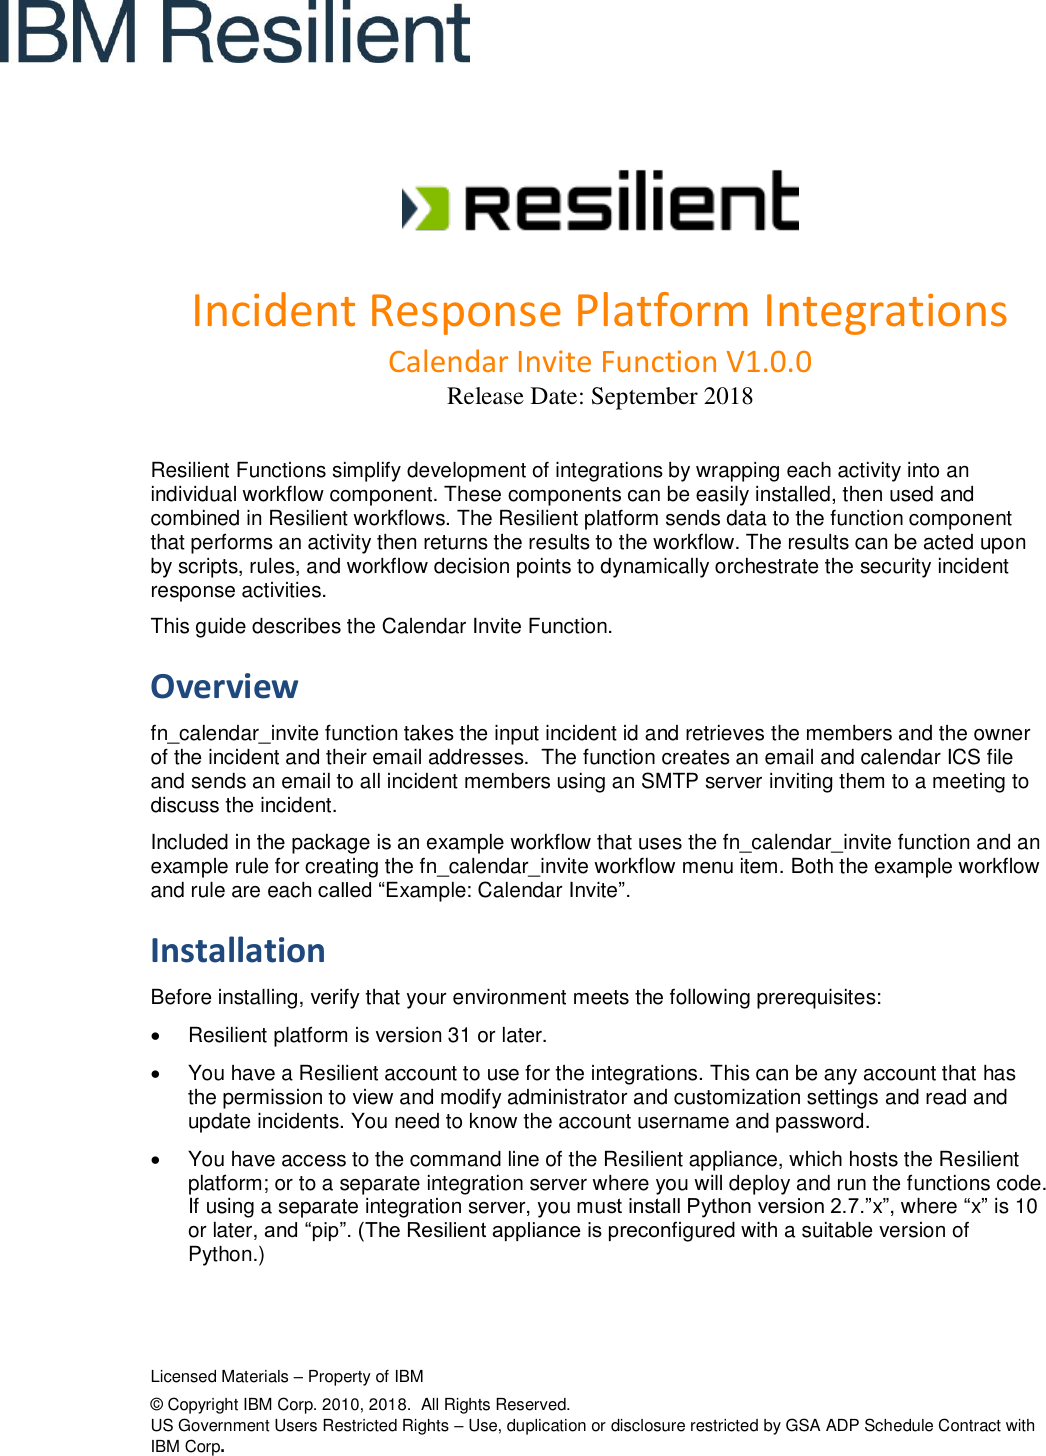 Resilient IRP Integrations Floss Function Guide Calendar Invite